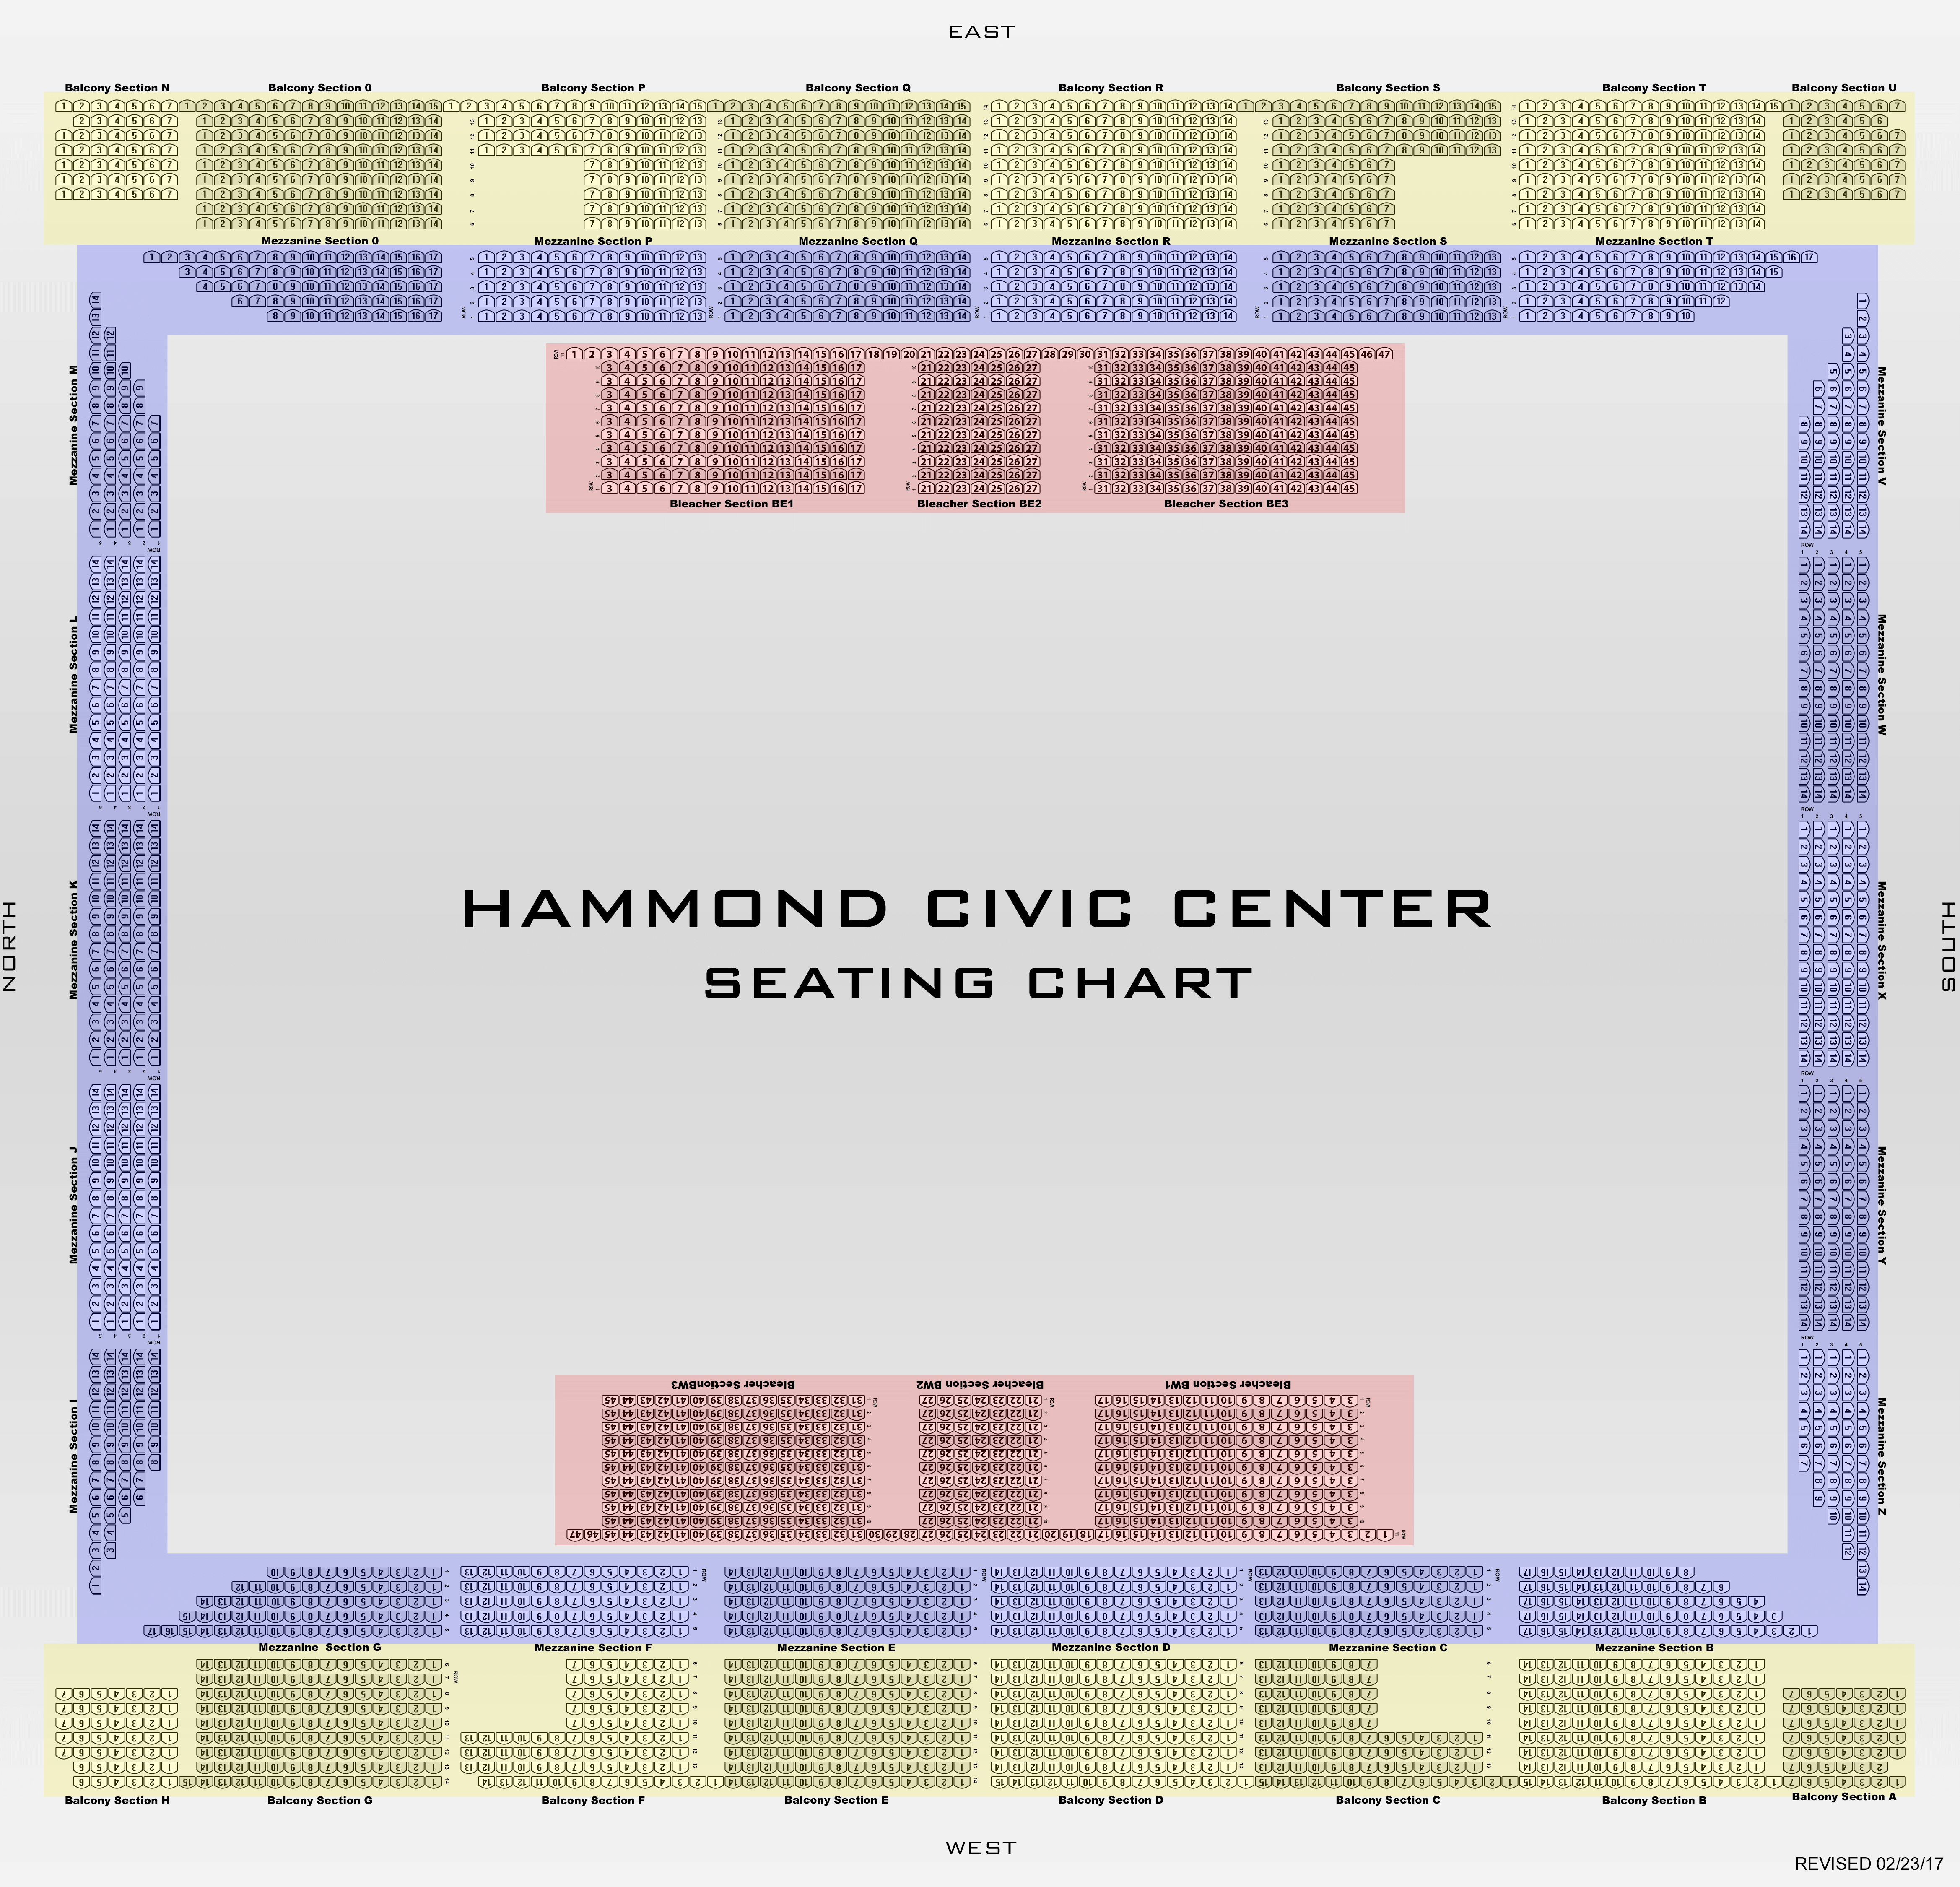 Hammond Civic Center Seating Chart